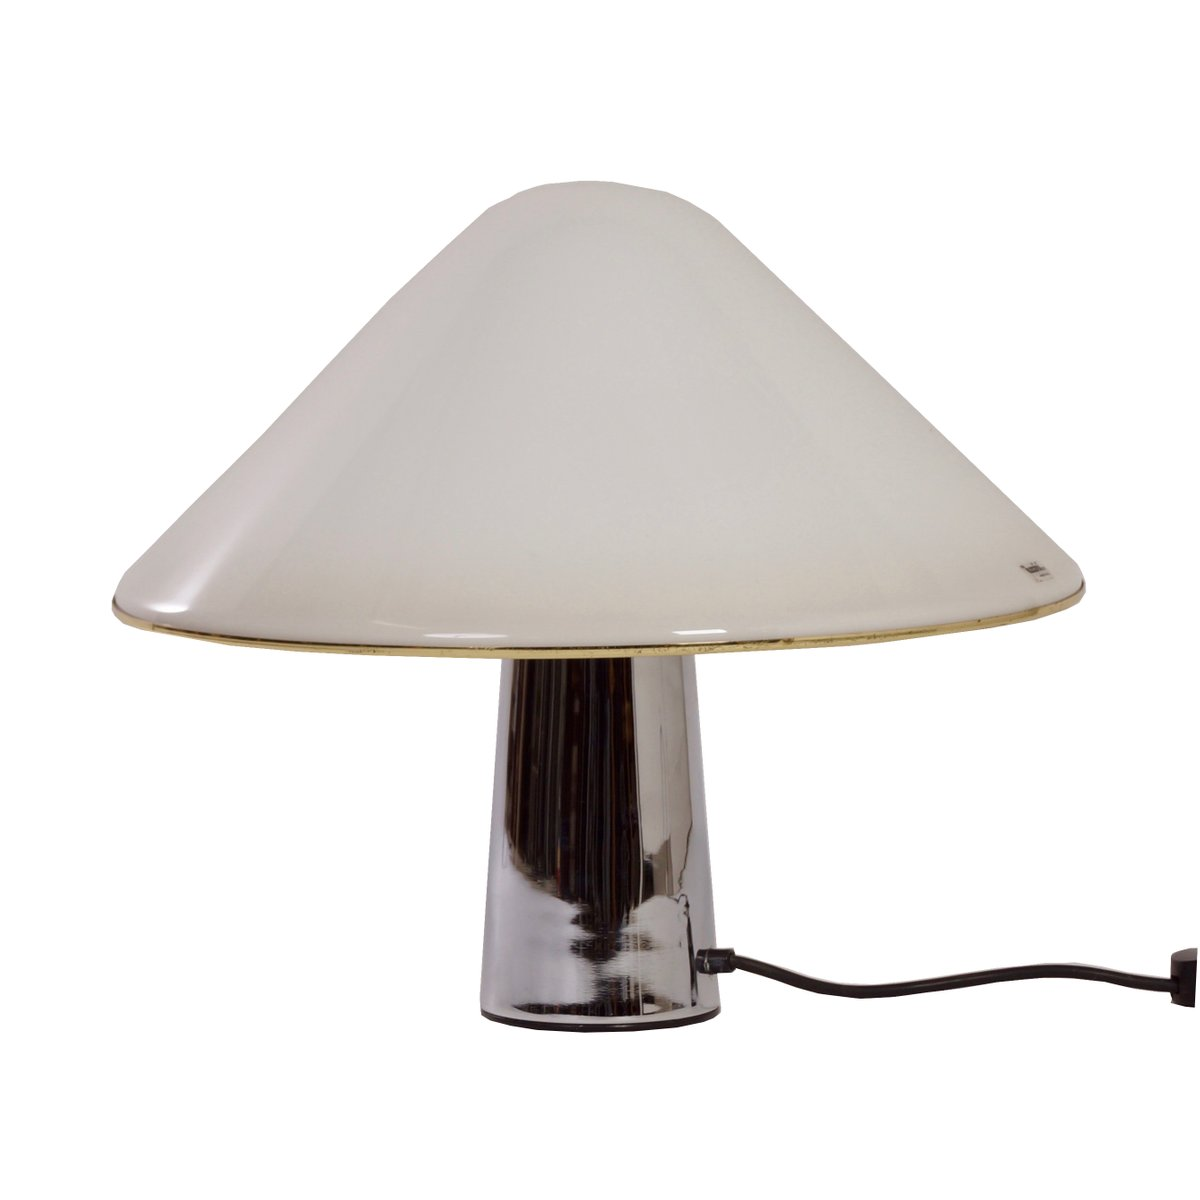 White Mushroom Lamp By Guzzini 1970s For Sale At Pamono